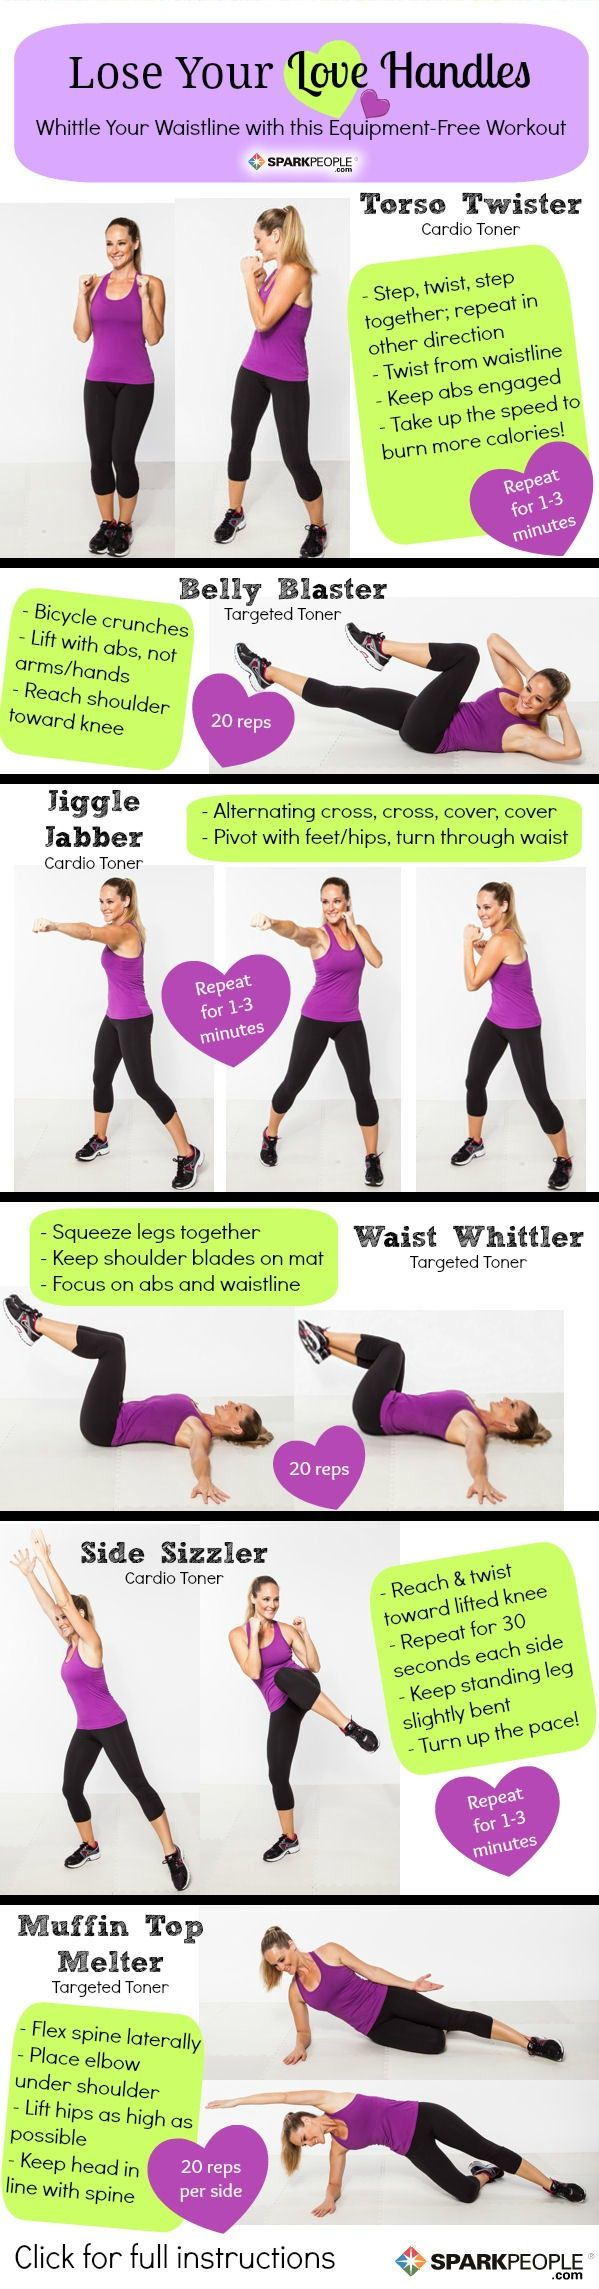 lose those love-handles workout